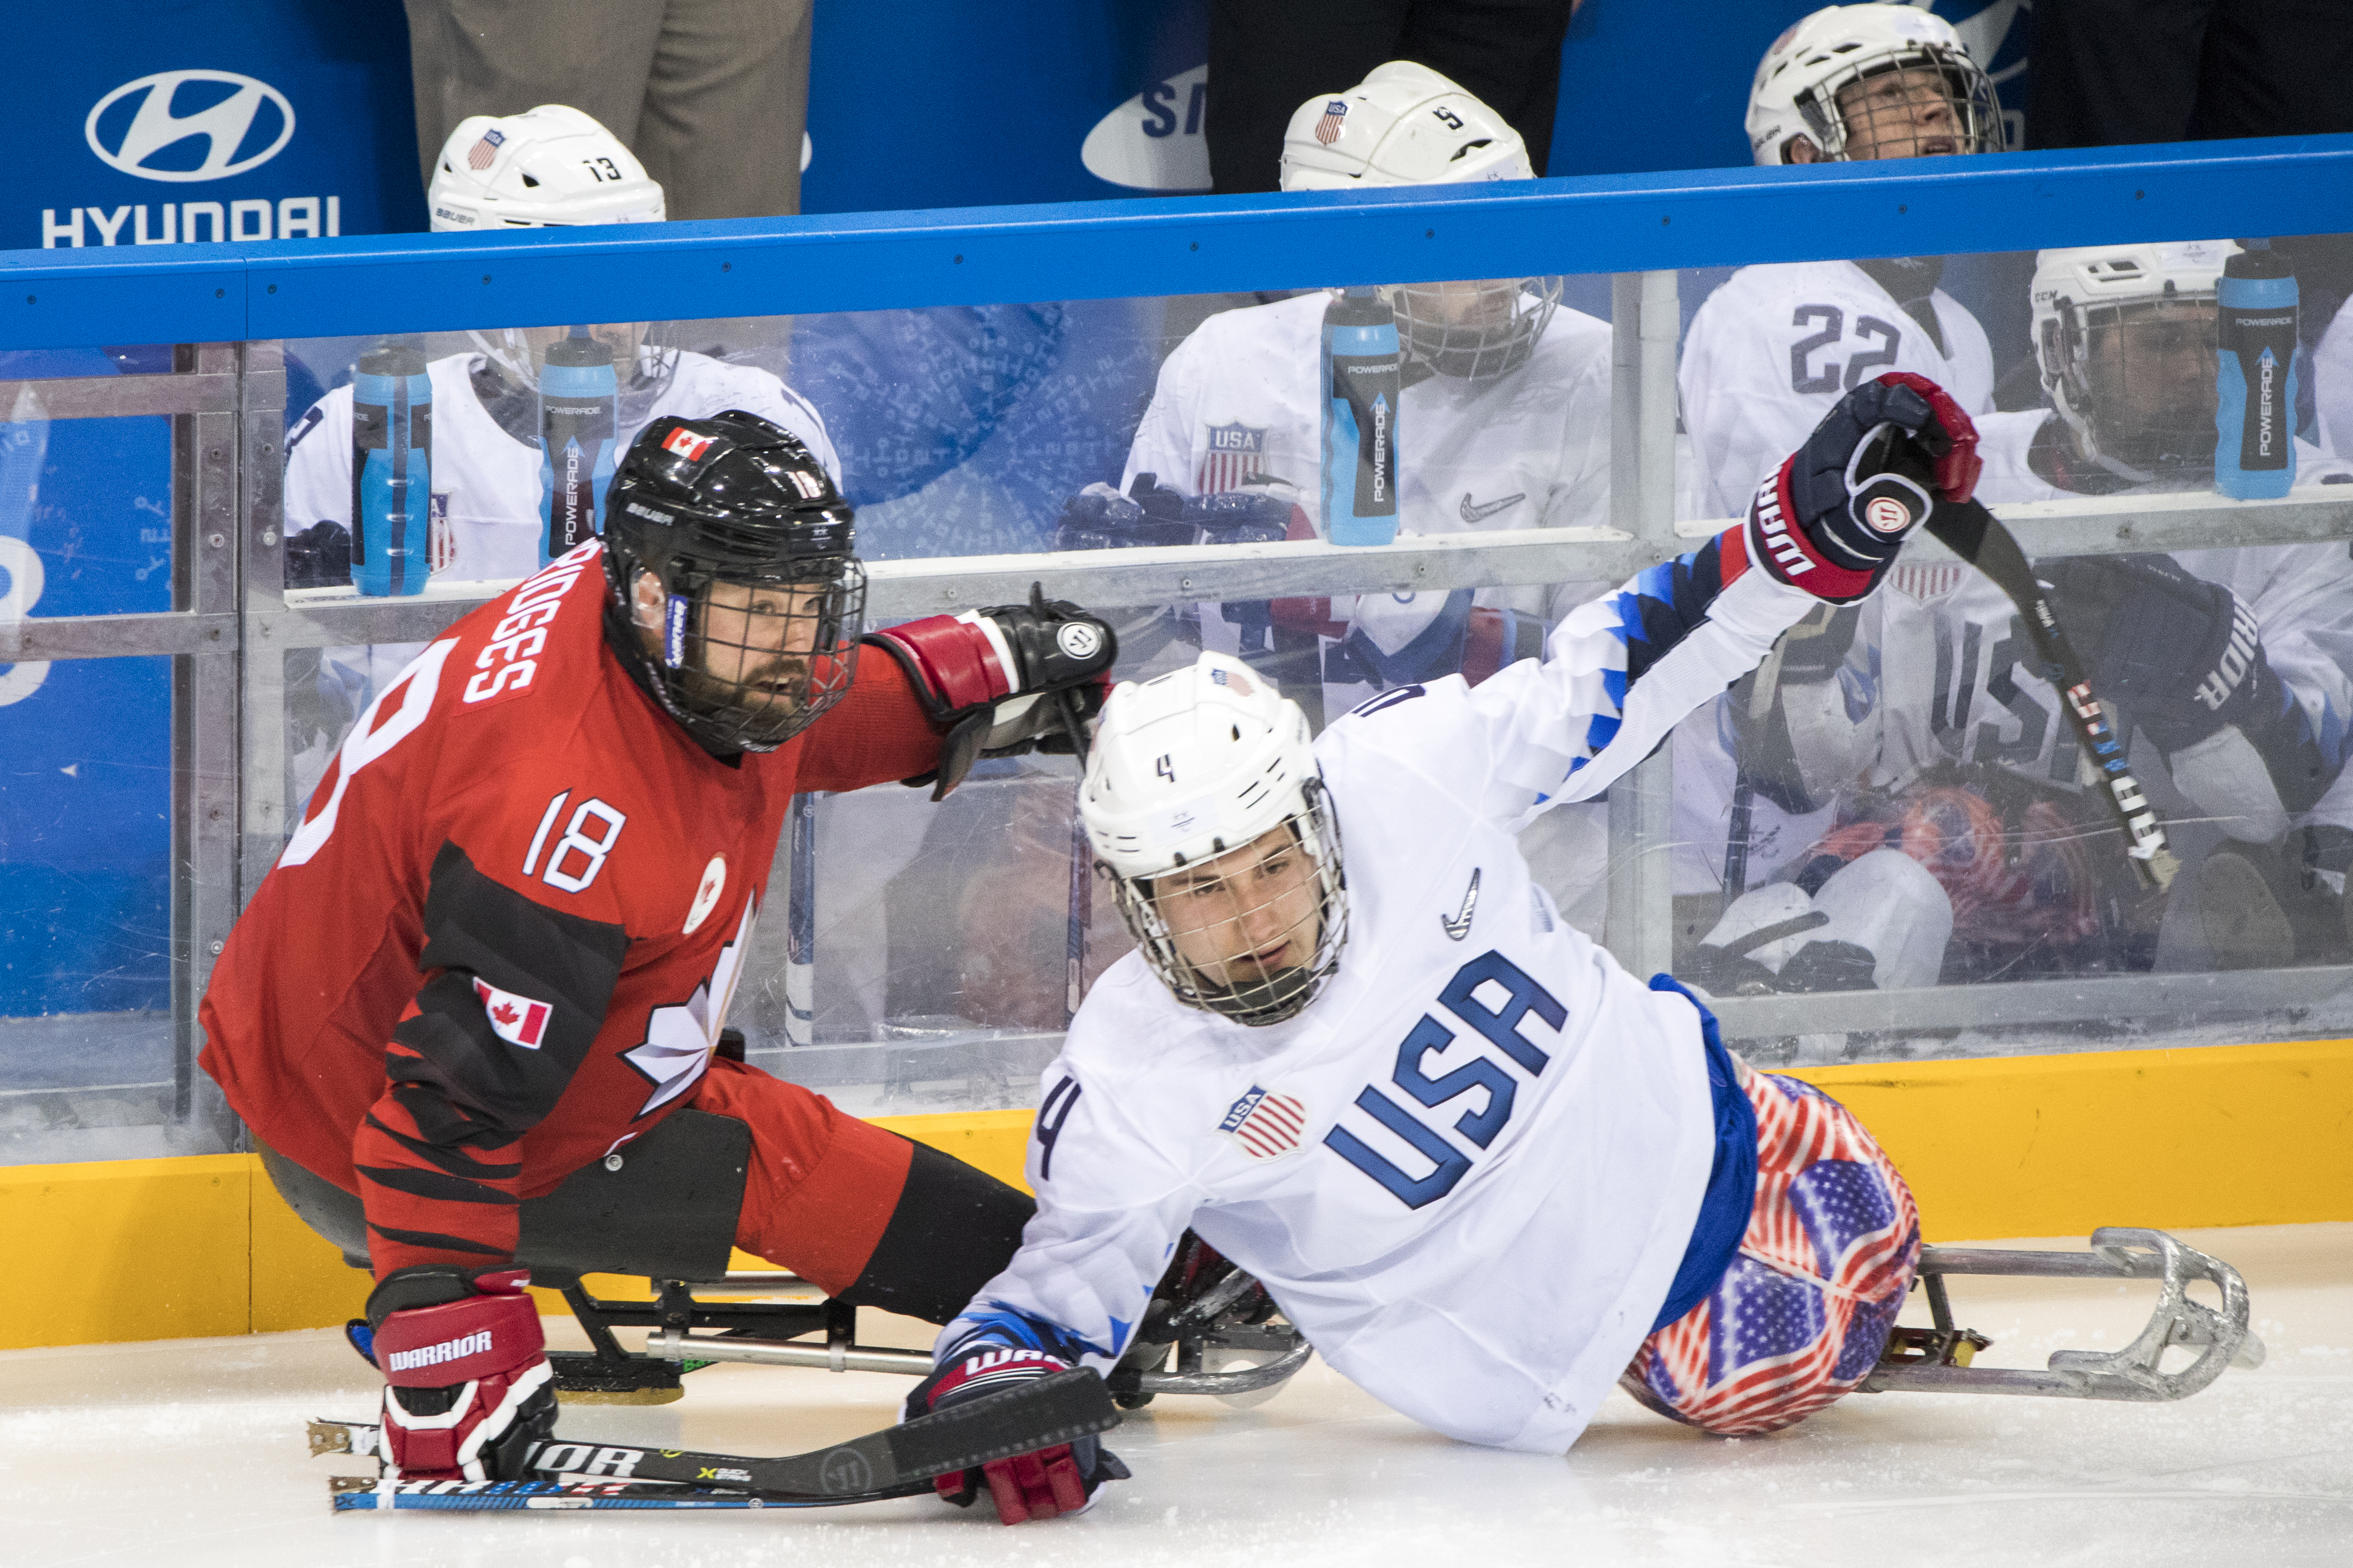 USA v Canada - Paralympic Games - Ice Hockey gold medal match